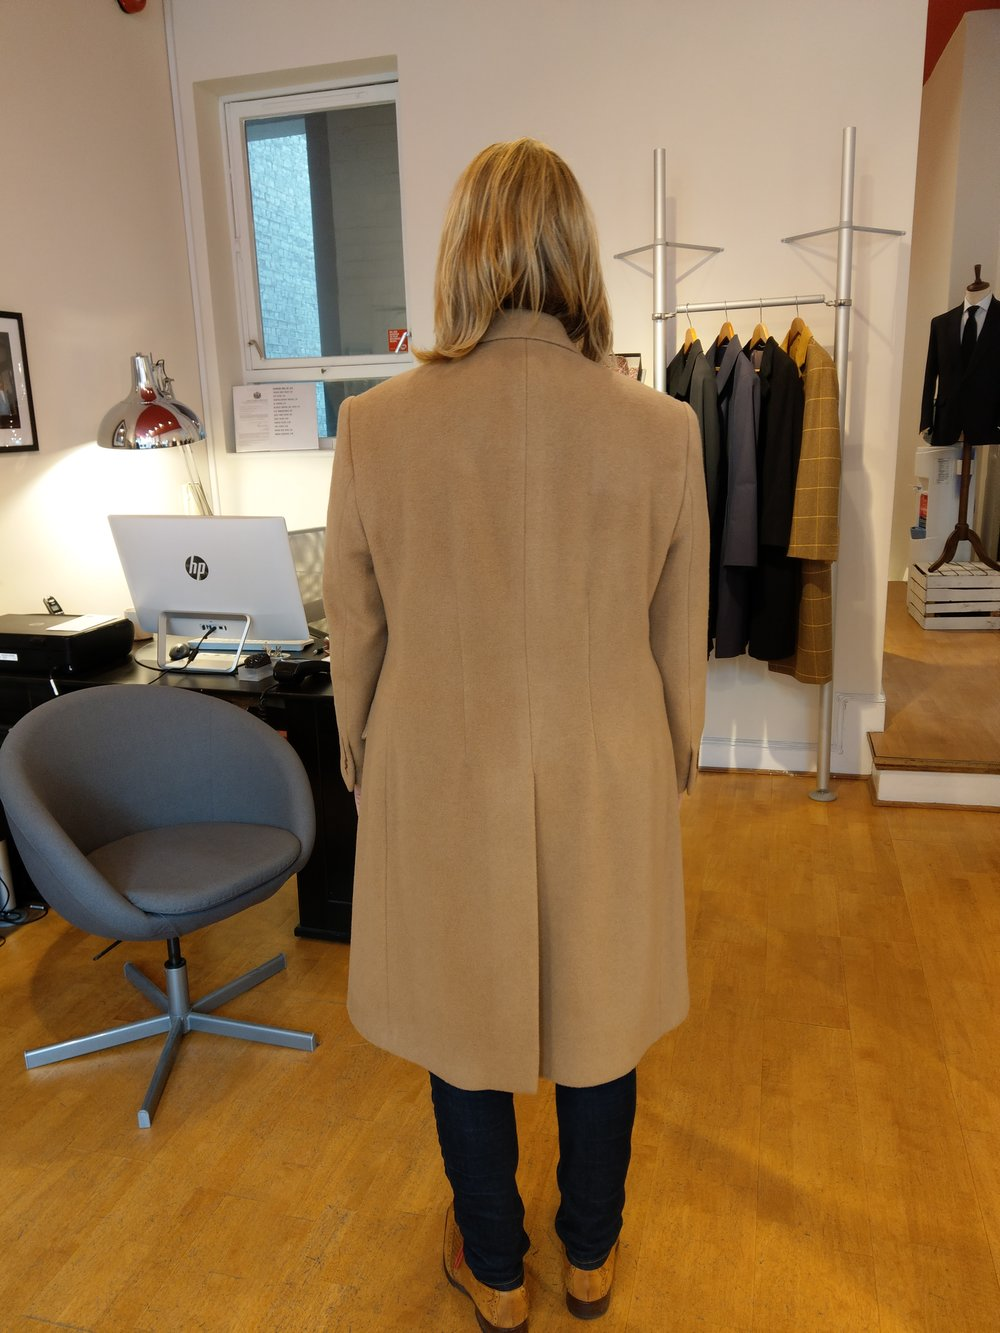 susannah-hall-tailor-coat-overoat-cashmere-camel-design-bespoke-ladies-tailoring-uk-made-britain-detail.jpg